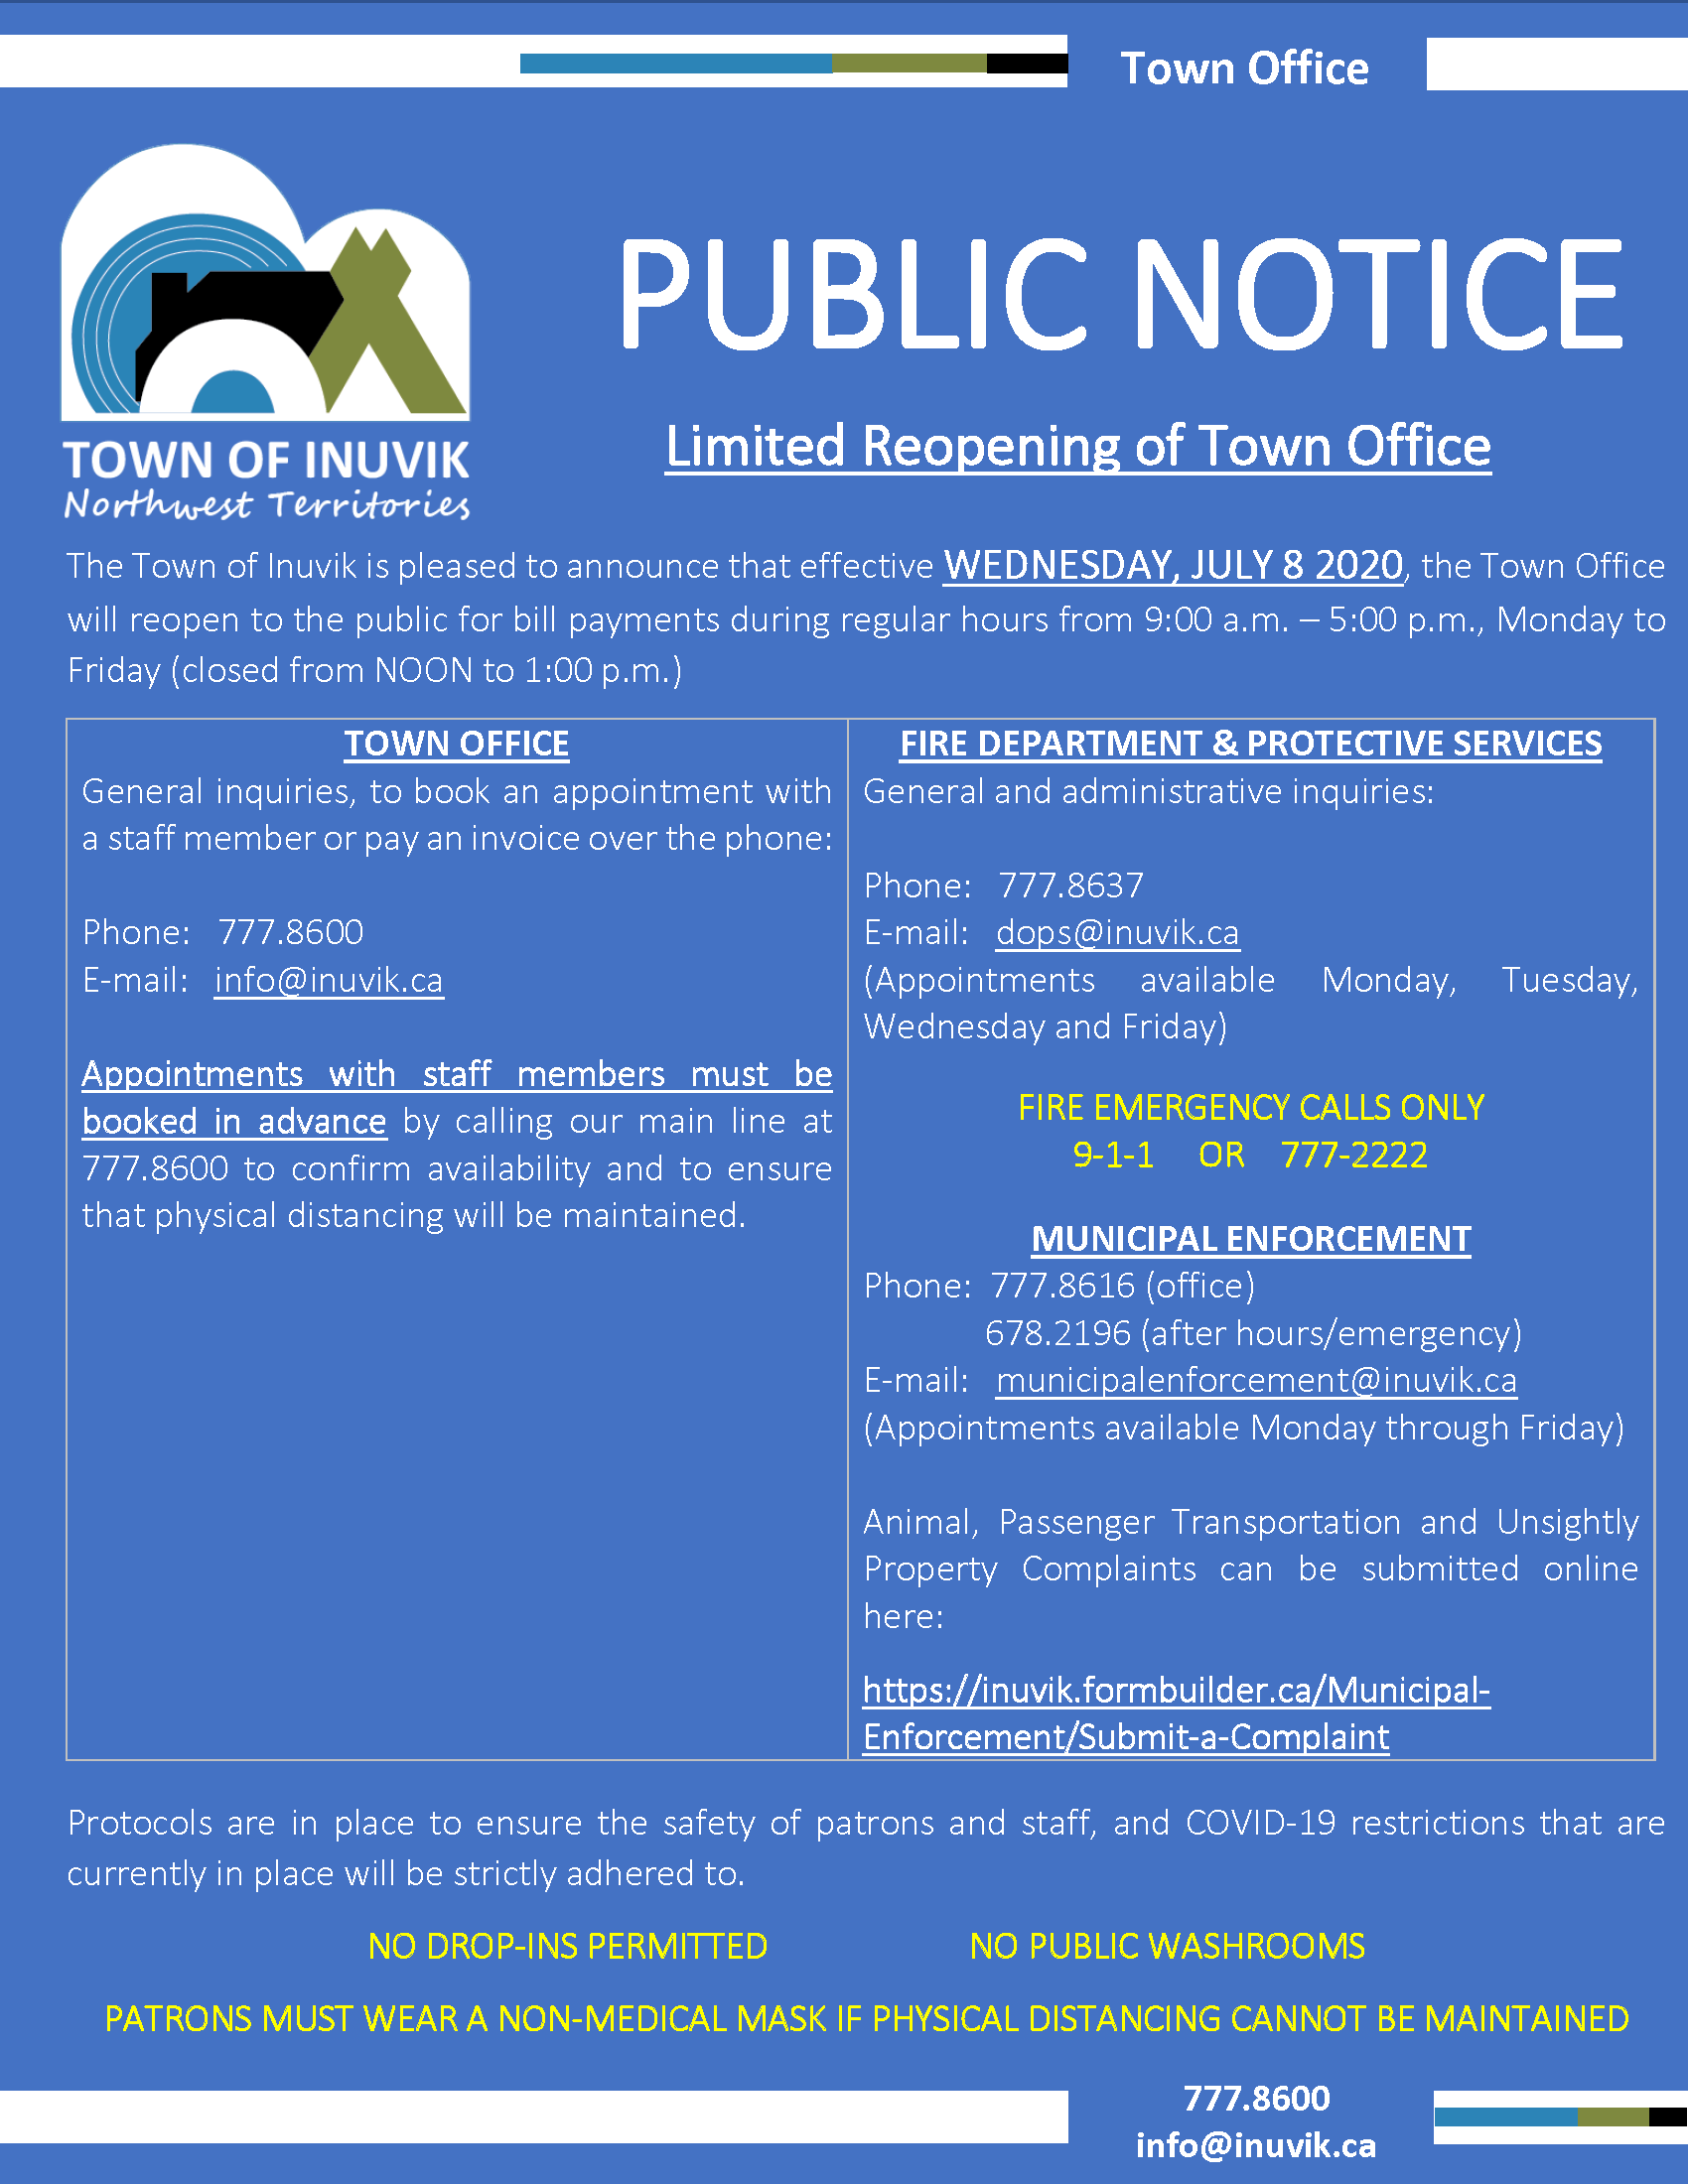 Town Office & Protective Services Reopening Notice